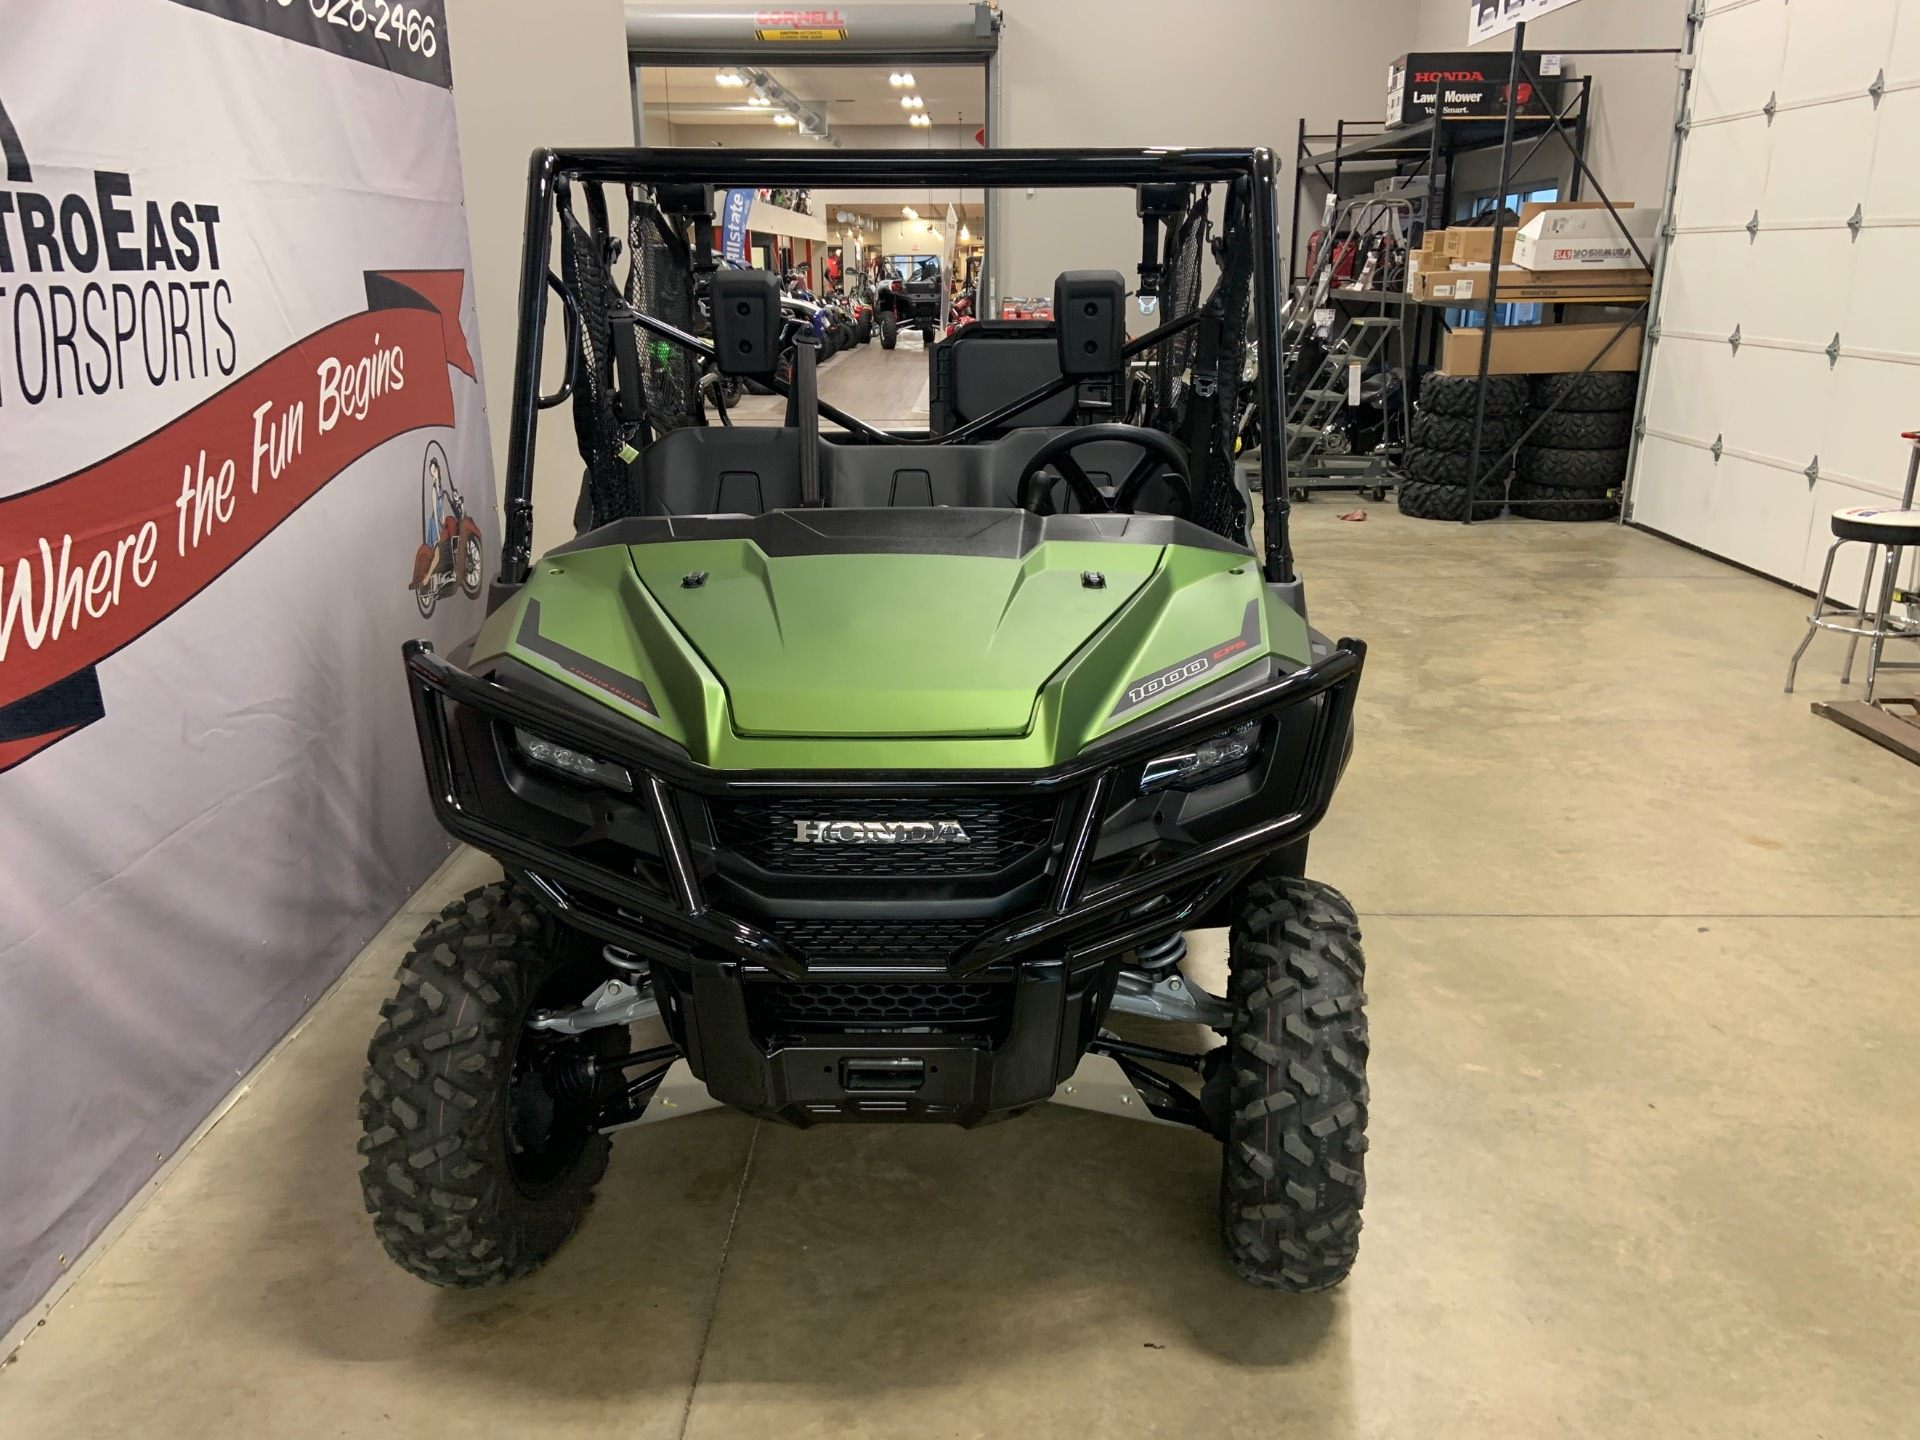 2020 Honda Pioneer 1000-5 LE in O Fallon, Illinois - Photo 3